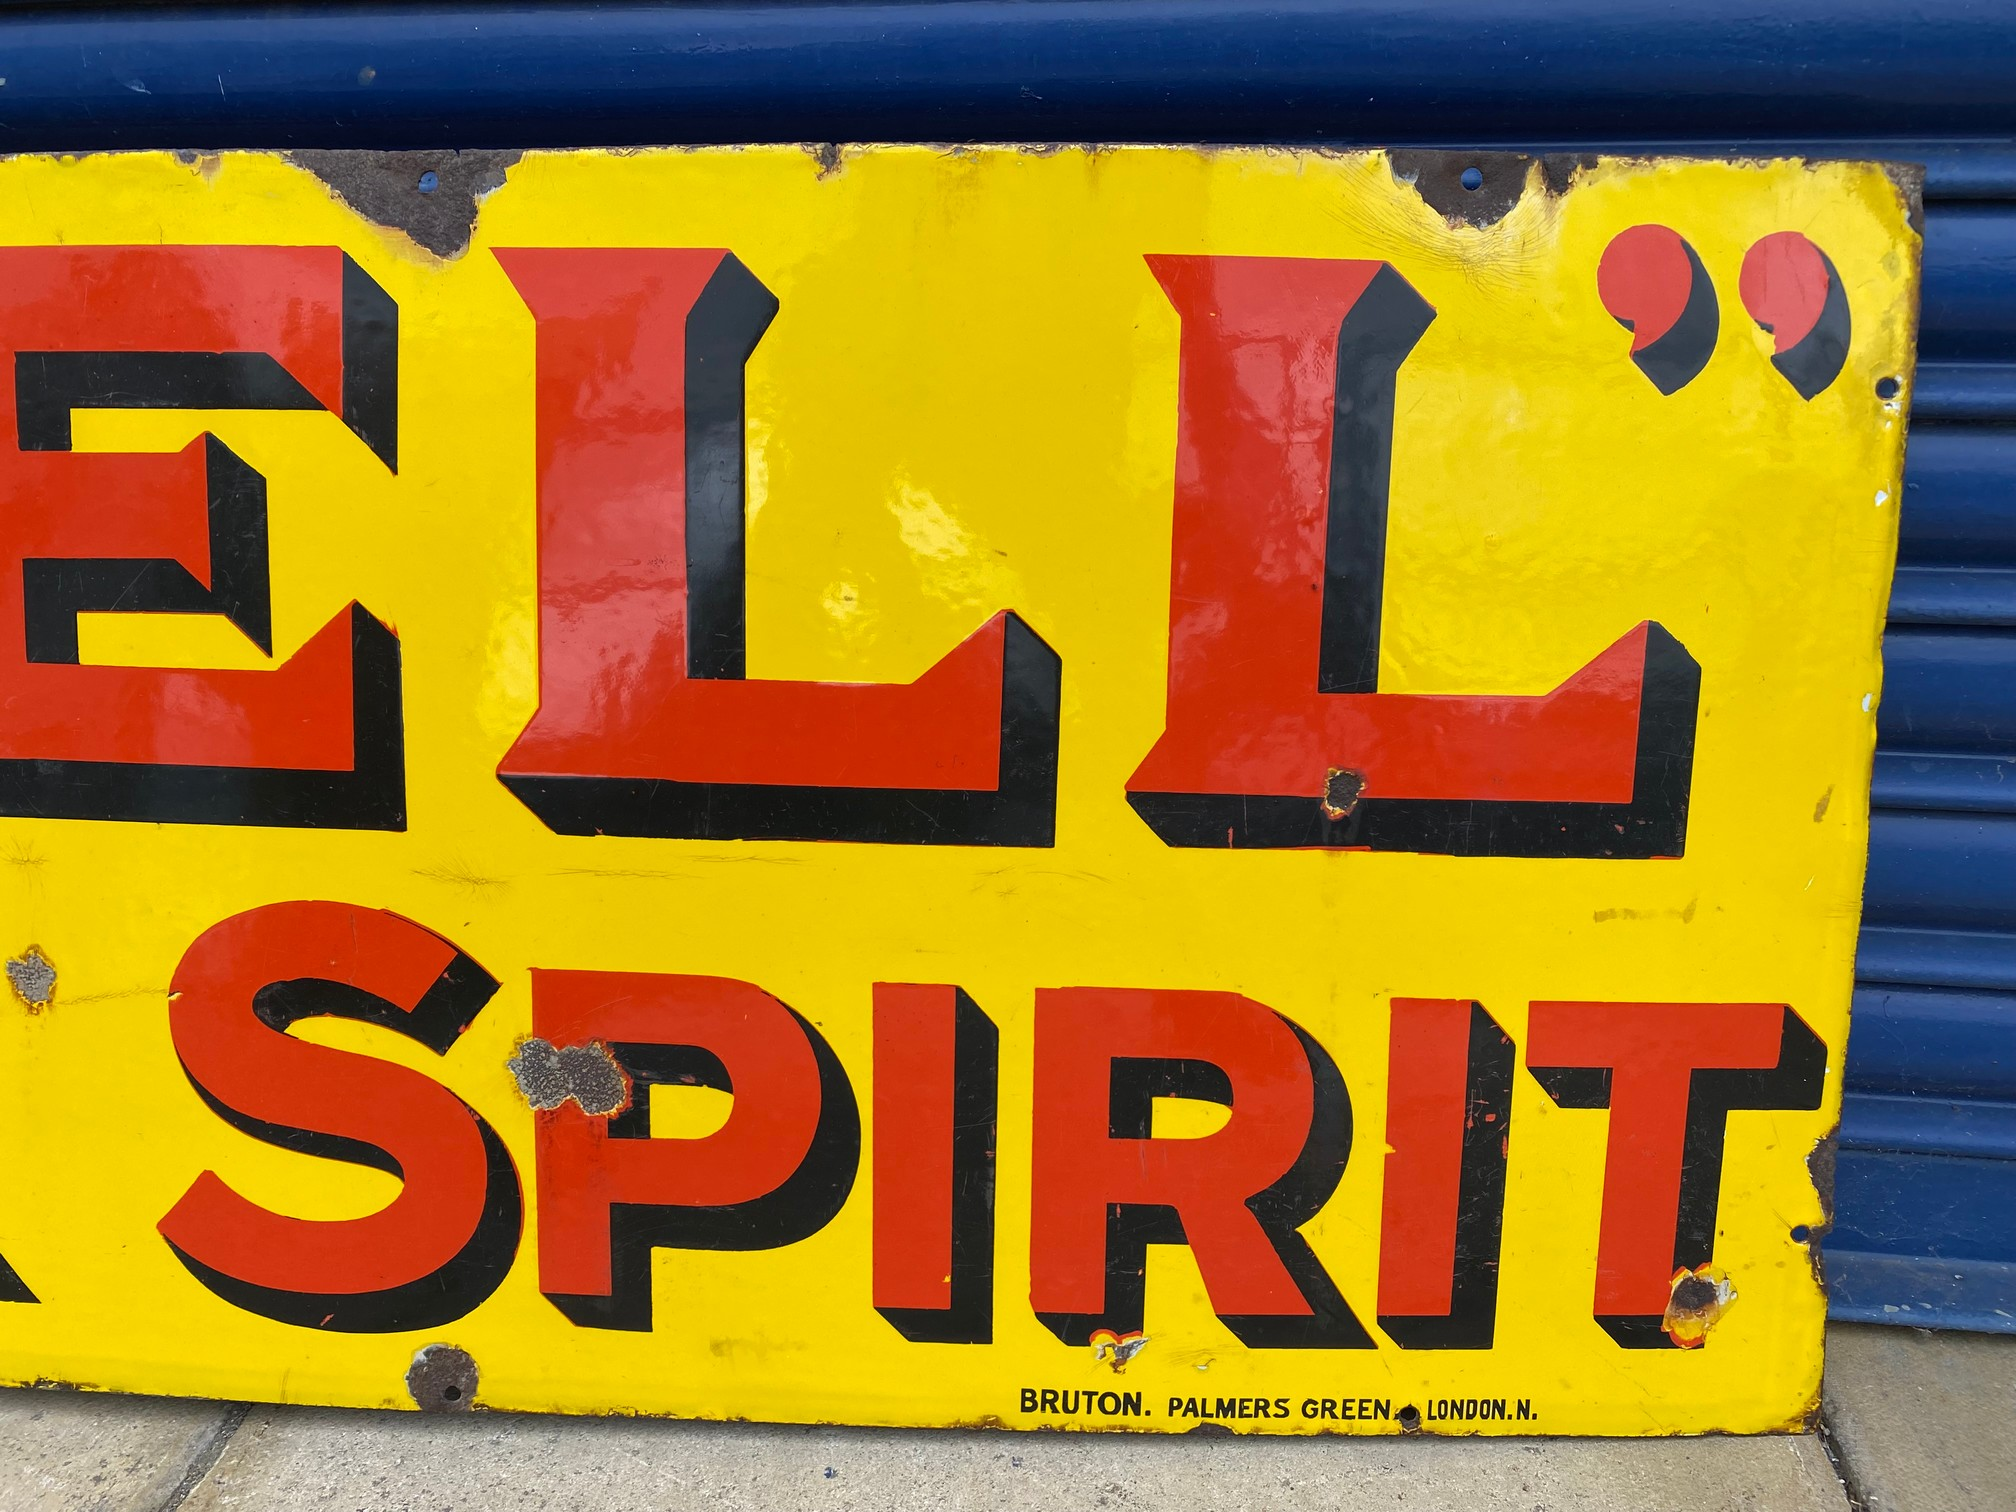 A Shell Motor Spirit rectangular enamel sign by Bruton of Palmers Green, excellent original - Image 4 of 5